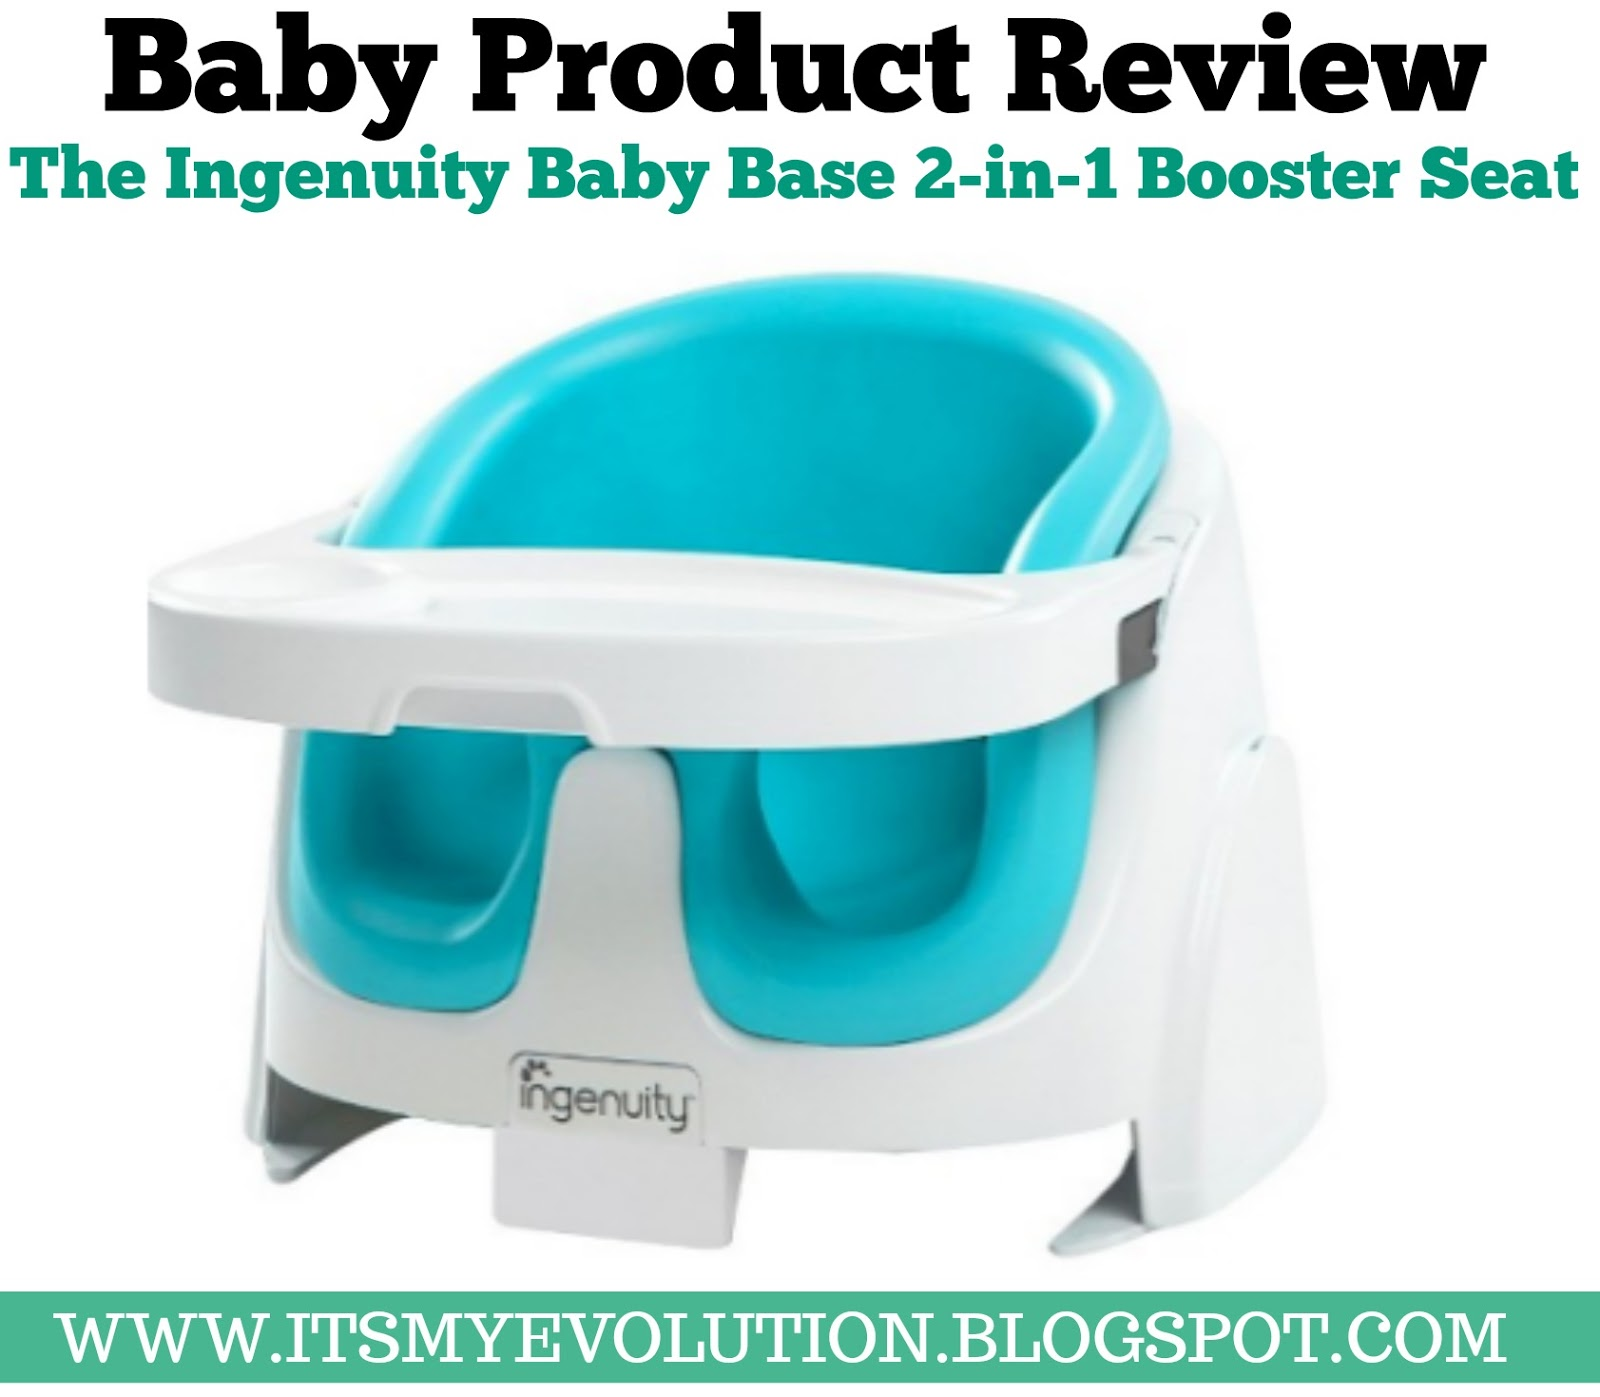 it 39 s my evolution baby product review the ingenuity baby base 2 in 1 booster seat. Black Bedroom Furniture Sets. Home Design Ideas